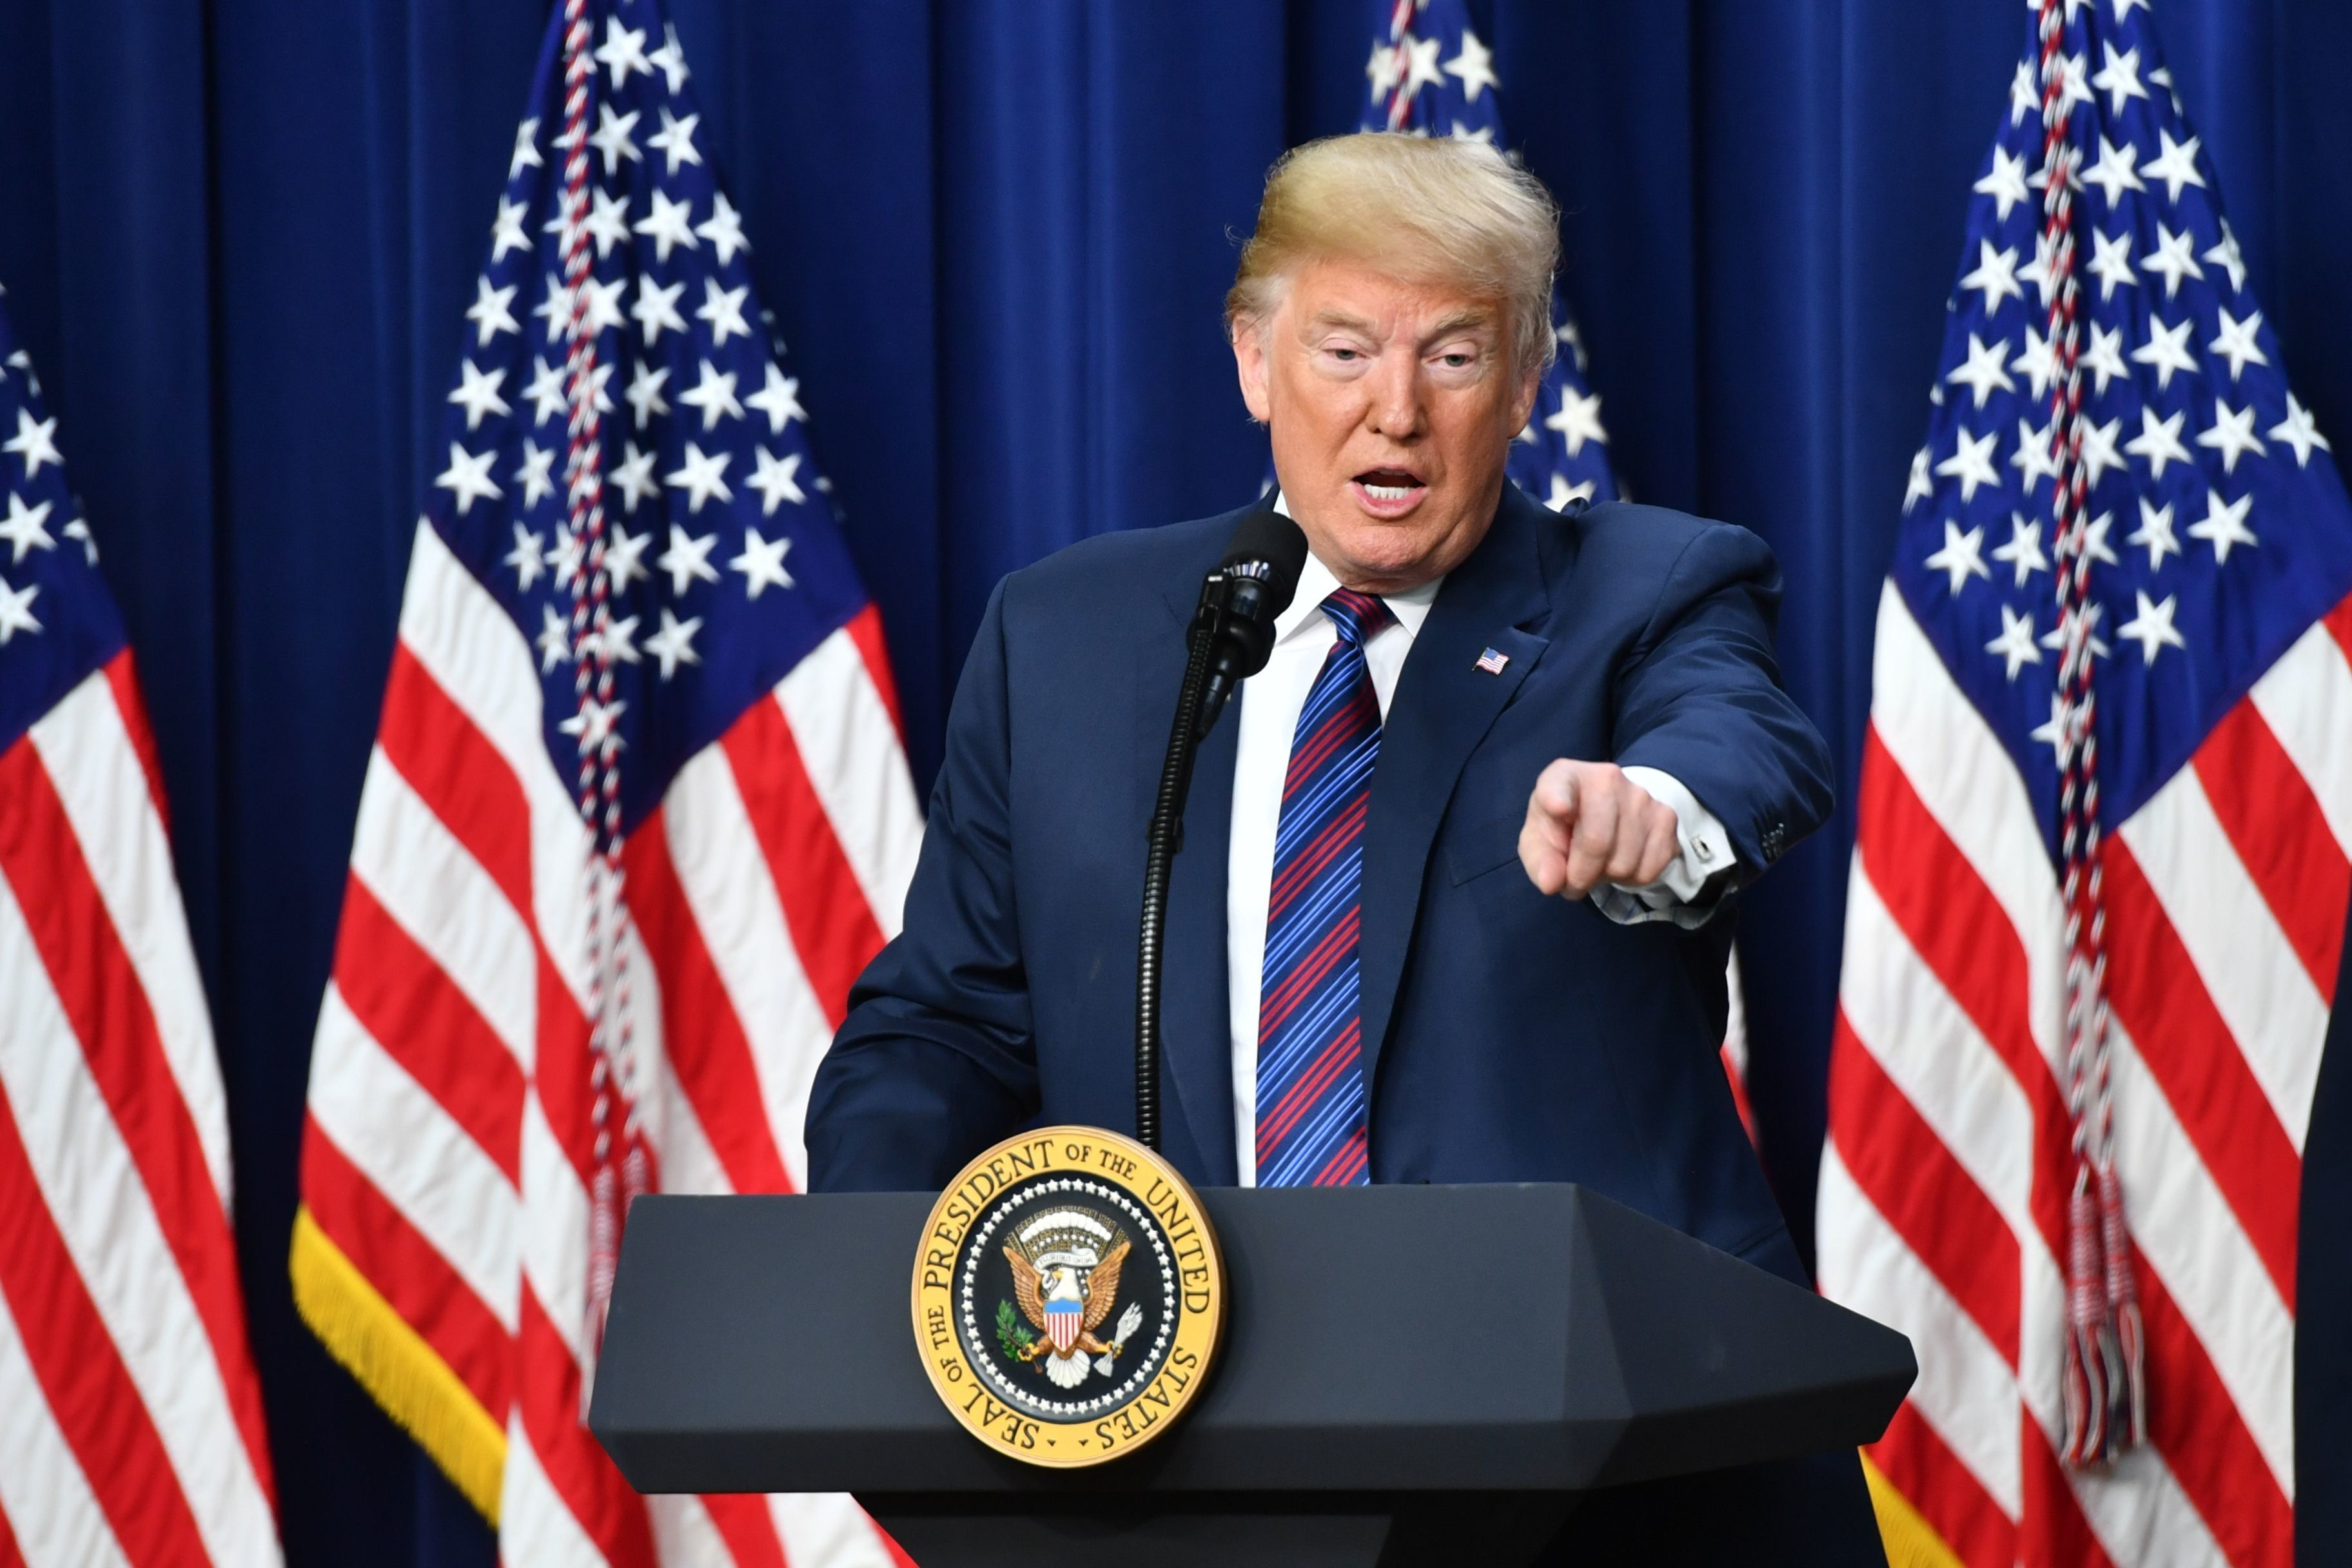 US President Donald Trump speaks before signing the 'Right To Try Act', which allows terminally ill patients to seek treatment using drugs that have not yet been approved, at the White House in Washington, DC, on May 30, 2018. (Photo by Nicholas Kamm / AFP)        (Photo credit should read NICHOLAS KAMM/AFP/Getty Images)